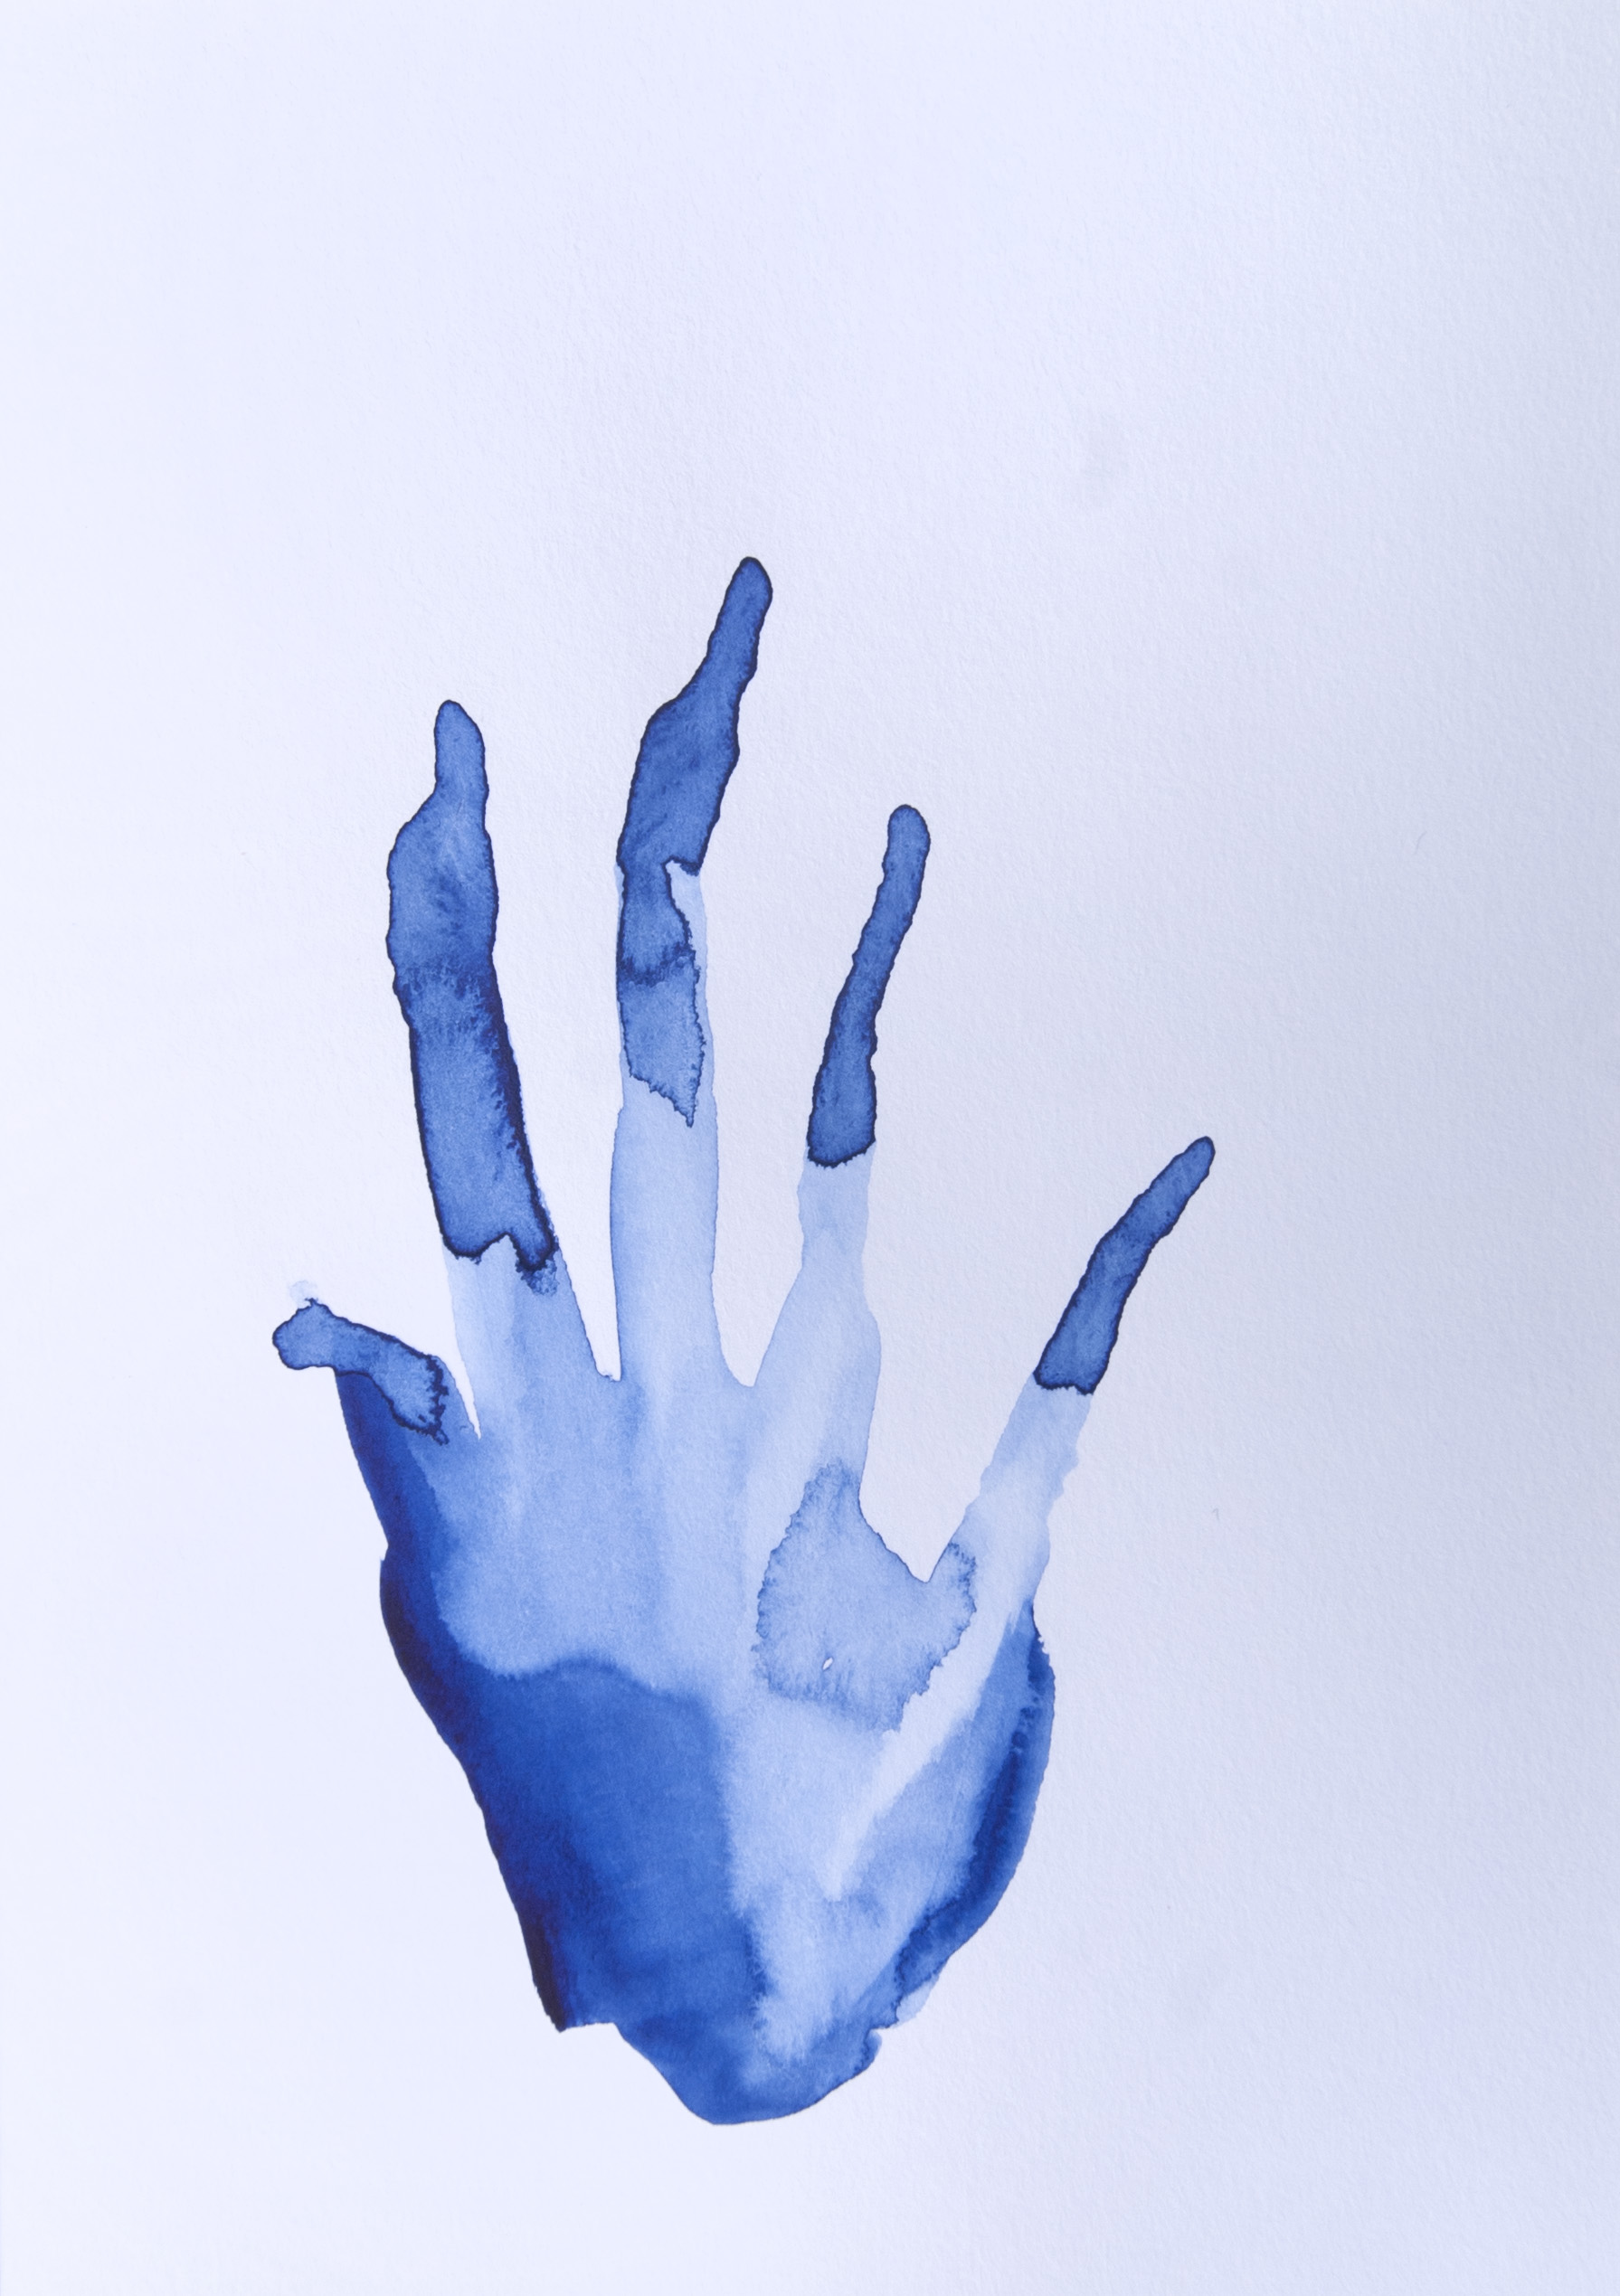 Blue Hand #1, watercolour on paper, 14.8 x 21 cm, 2020